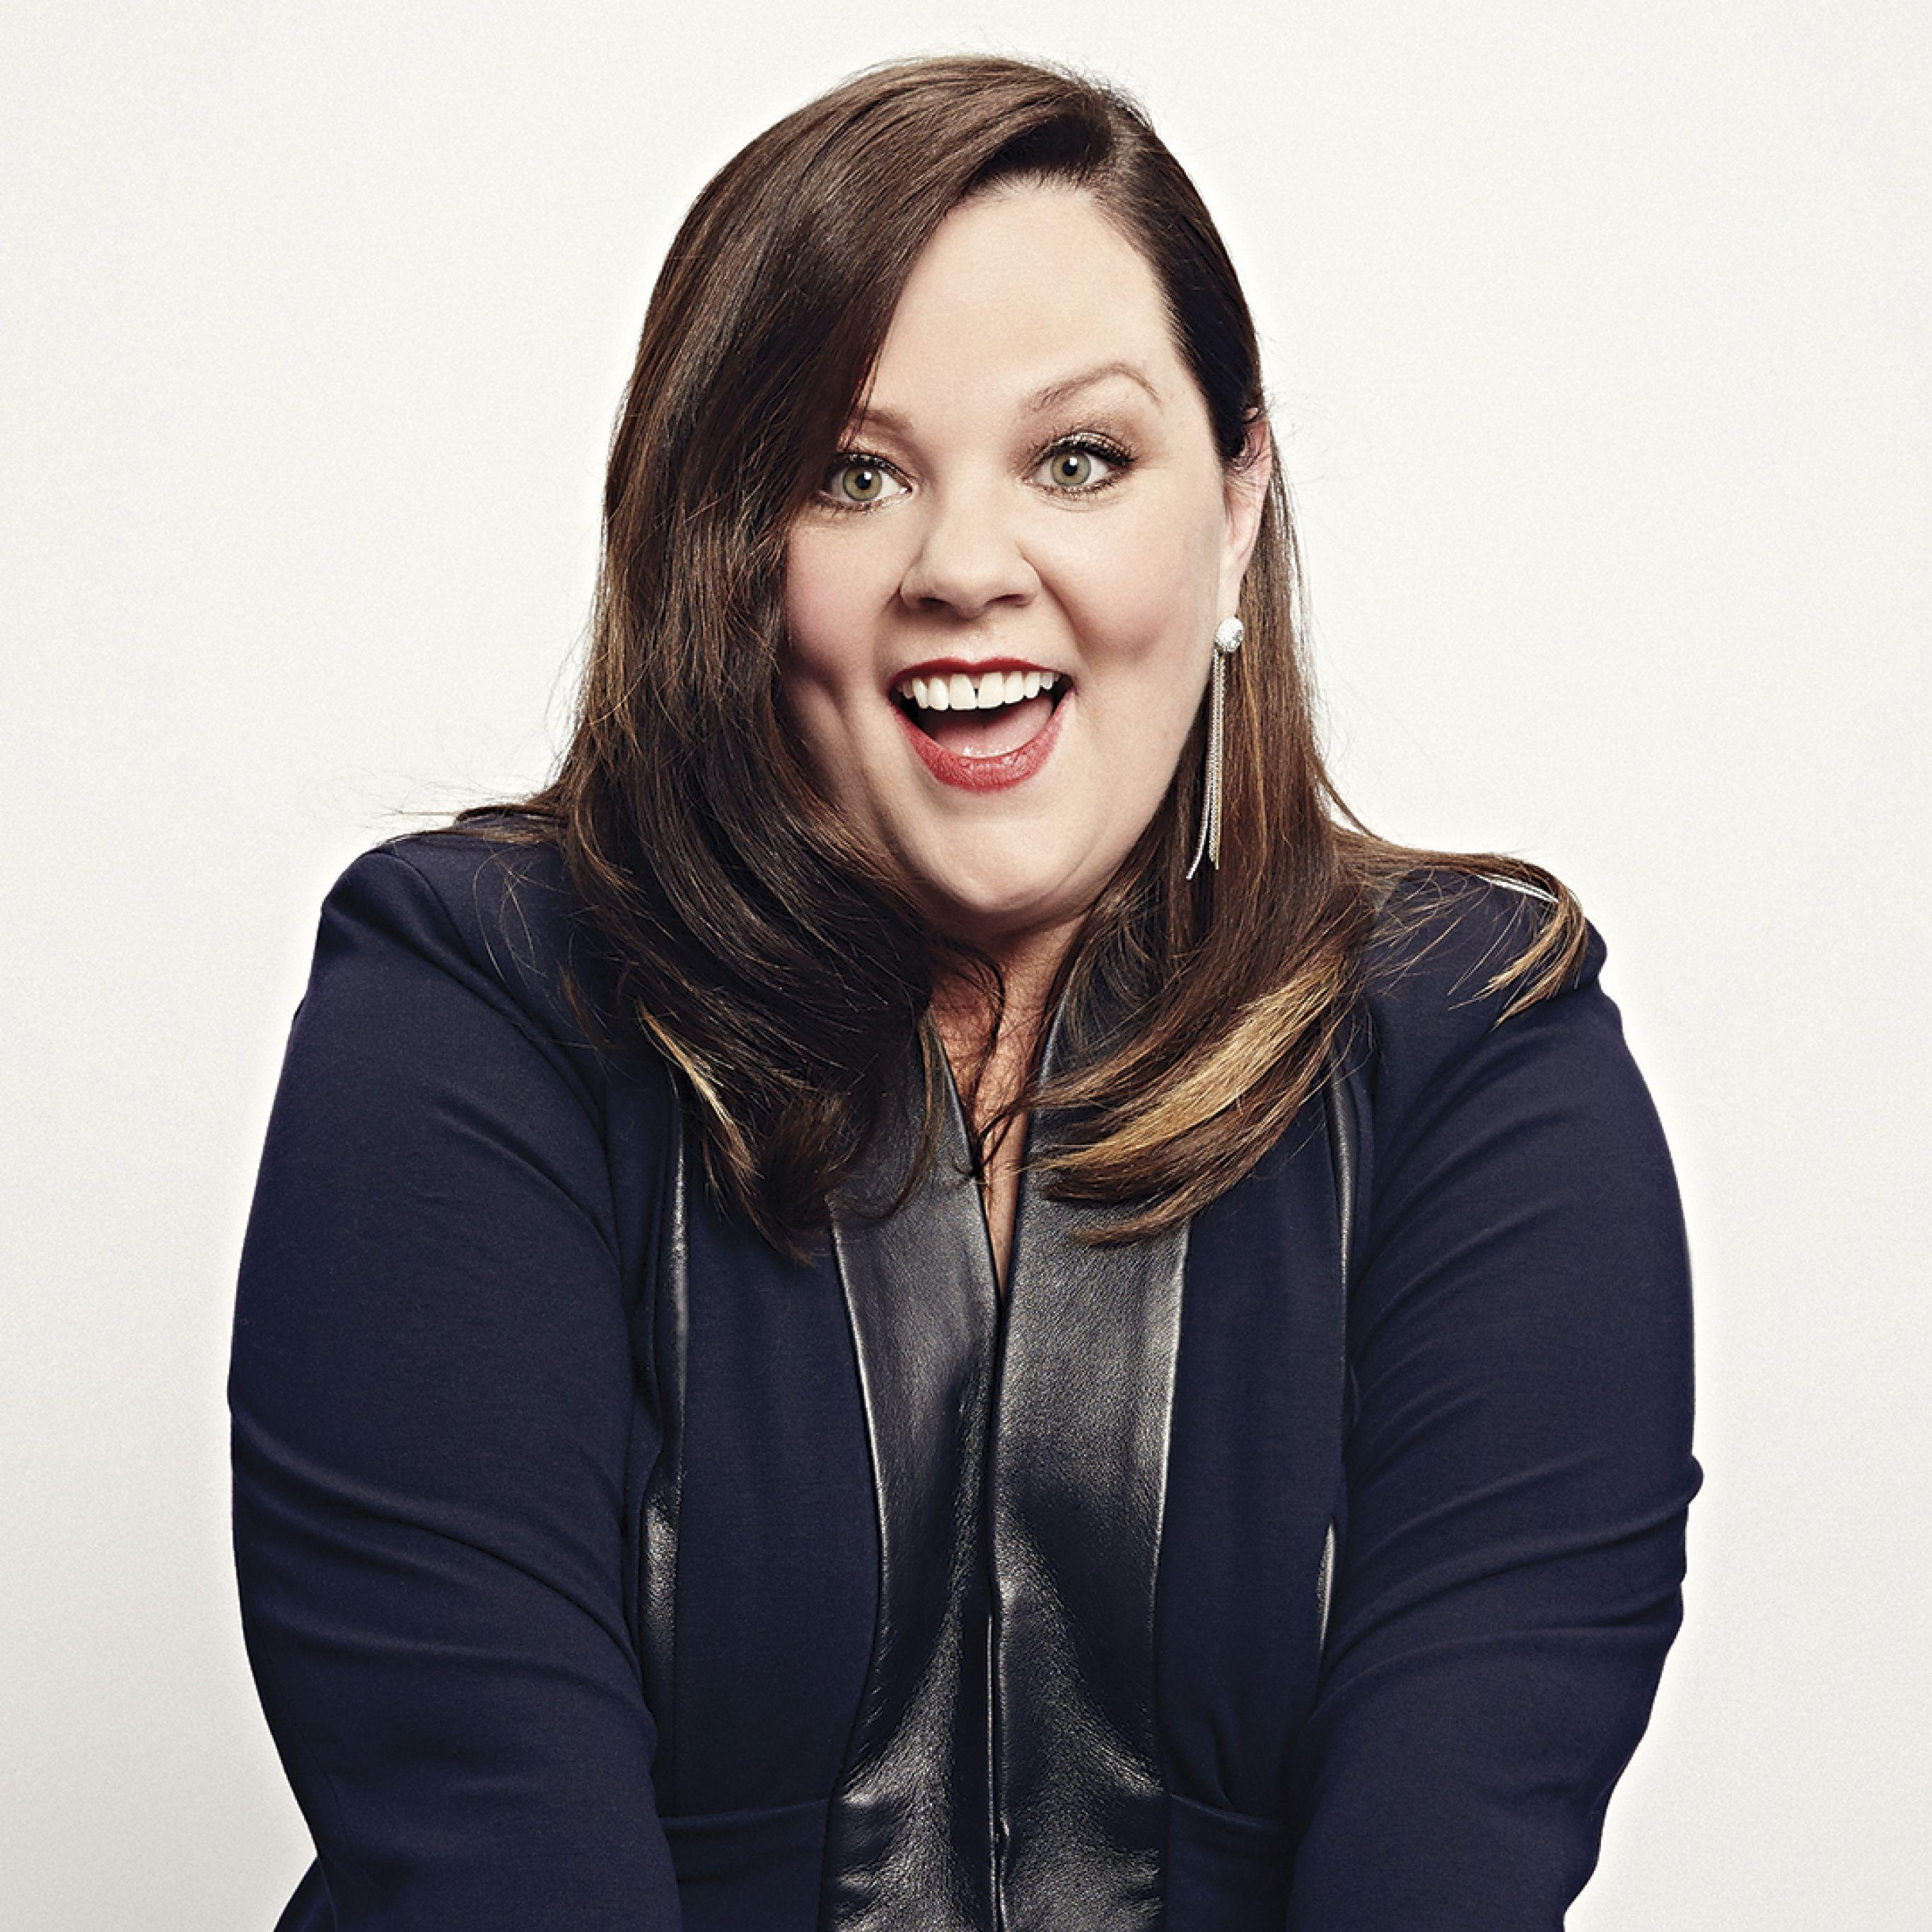 Download Wallpaper 2732x2732 Melissa mccarthy, Actress, Smiling ...